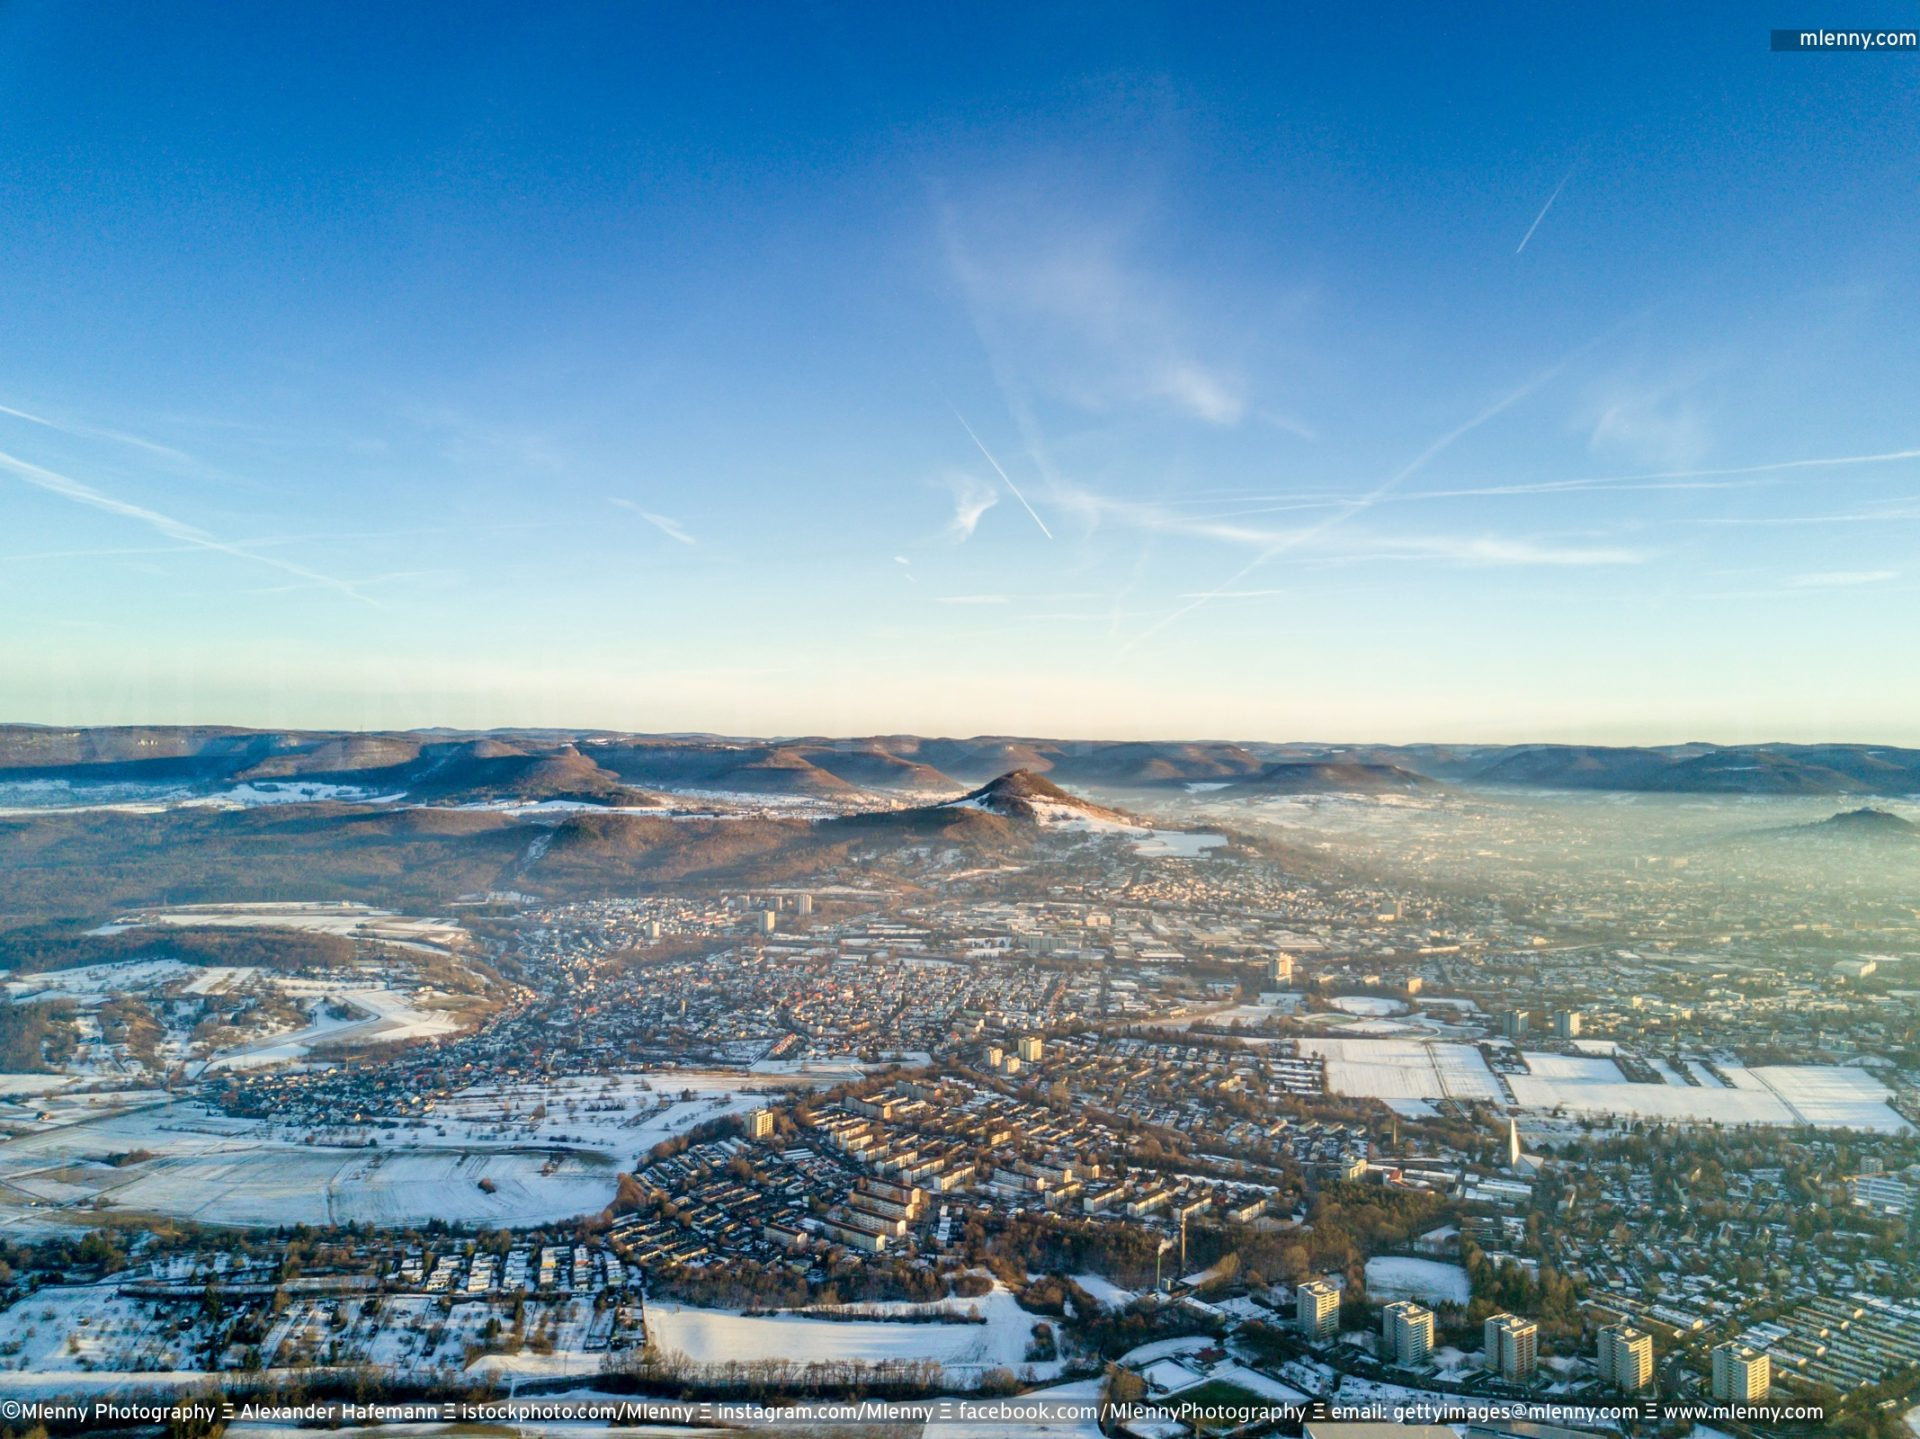 Reutlingen Achalm Swabian Alb Aerial View in Winter, Germany